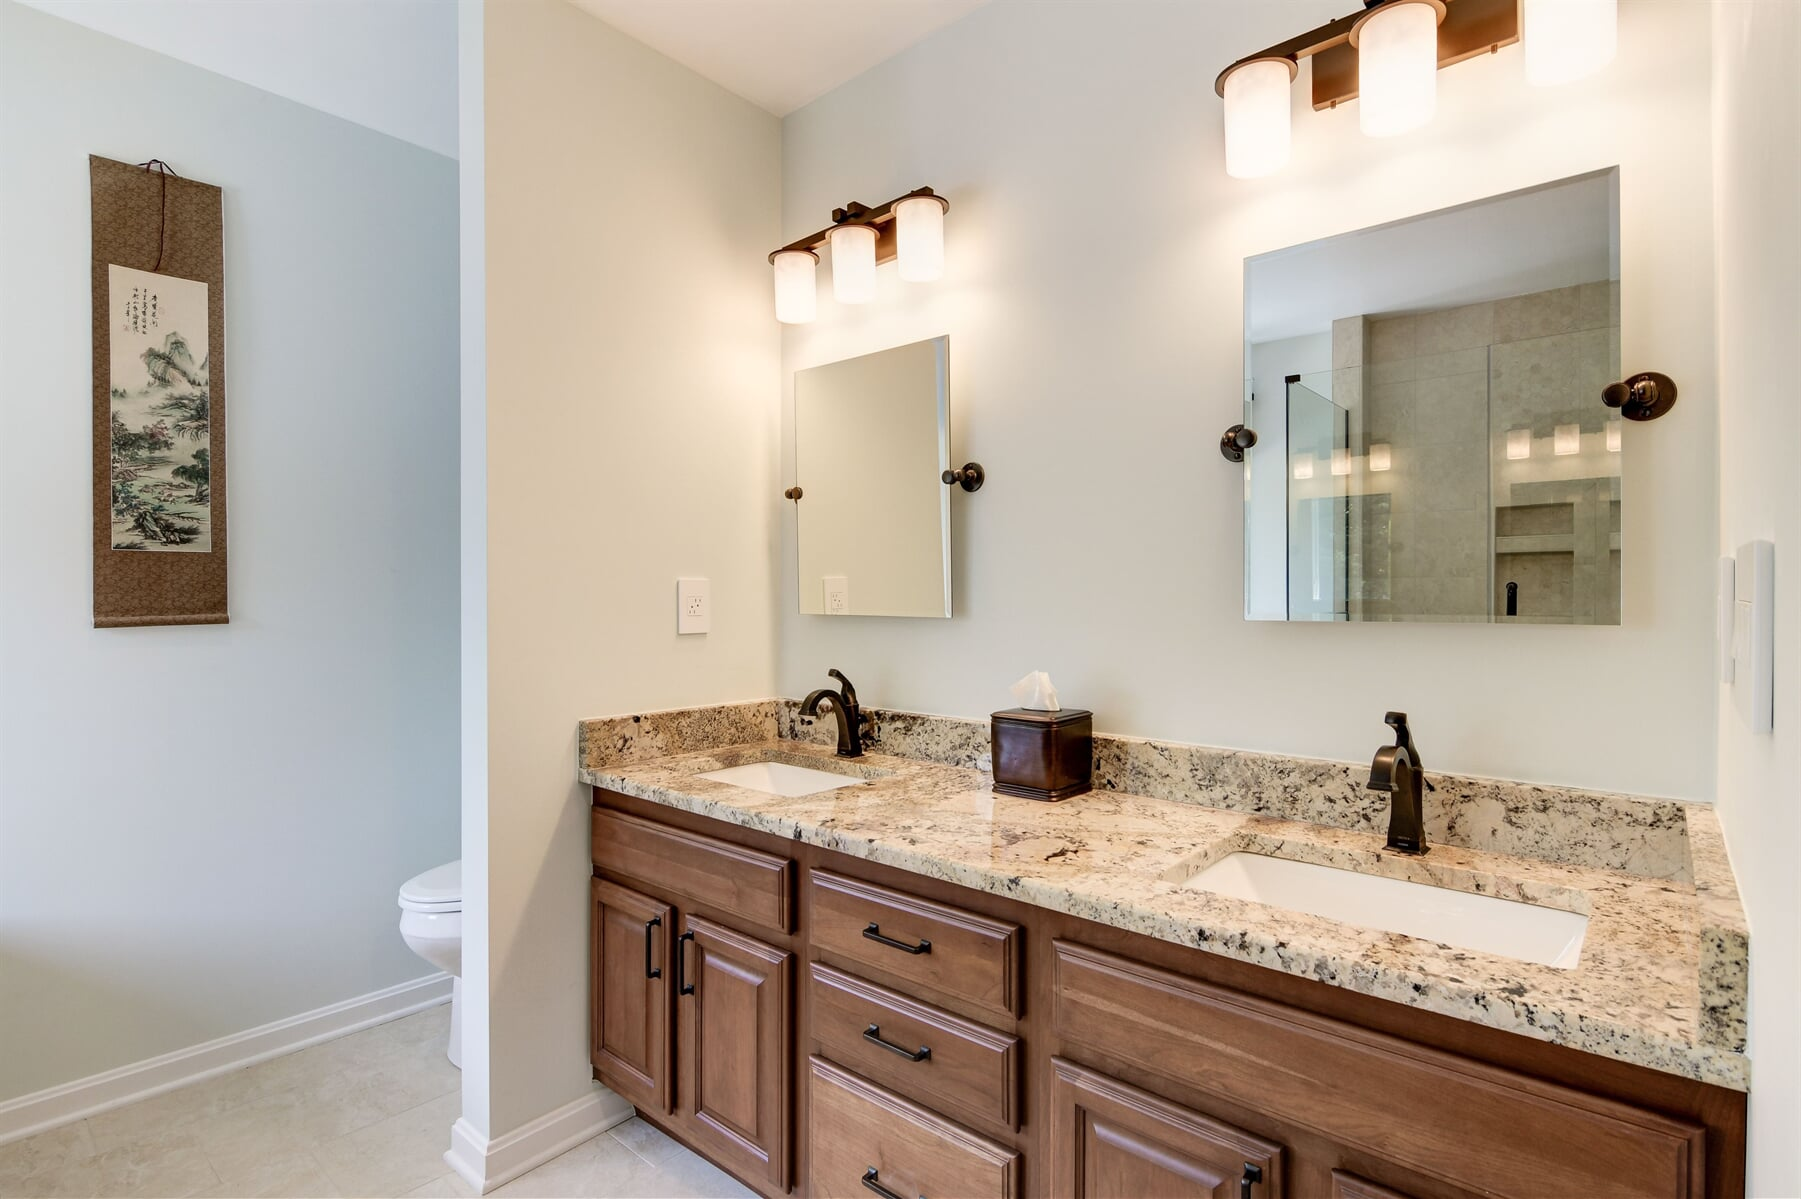 Bathroom remodeling in Owings, MD by Southern Maryland Kitchen, Bath, Floors & Design